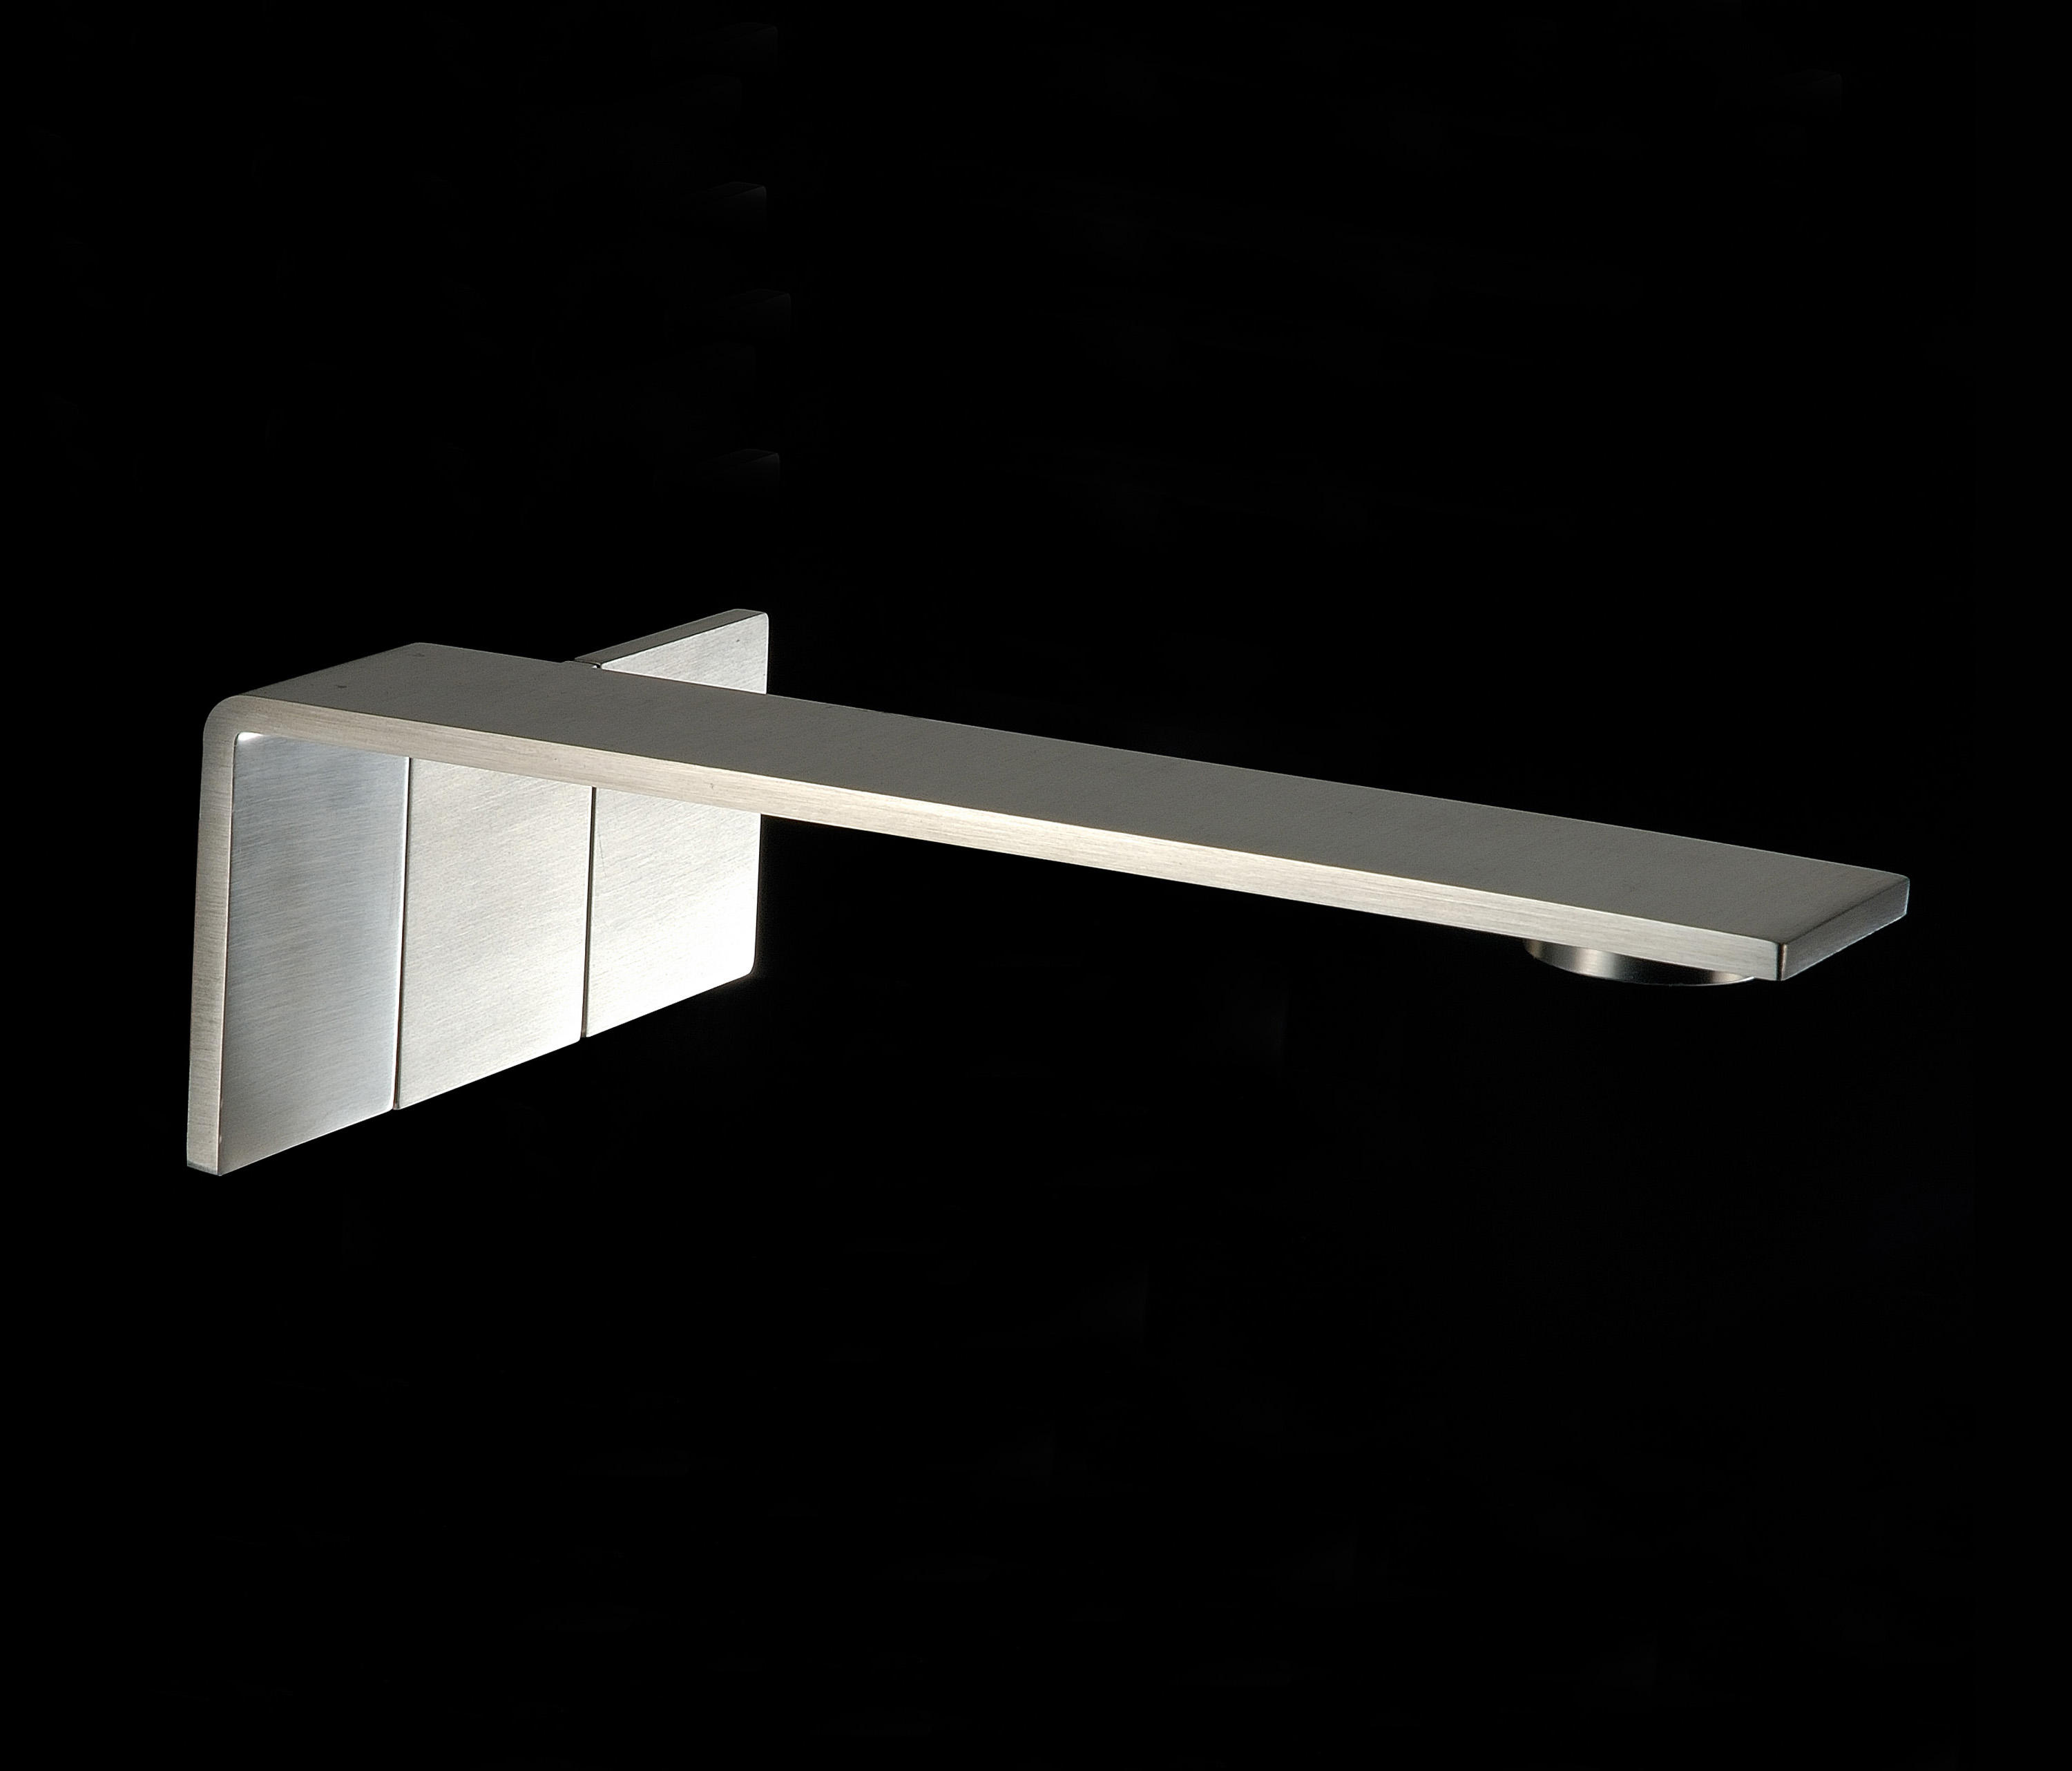 5MM - Wash-basin taps from Rubinetterie Treemme | Architonic